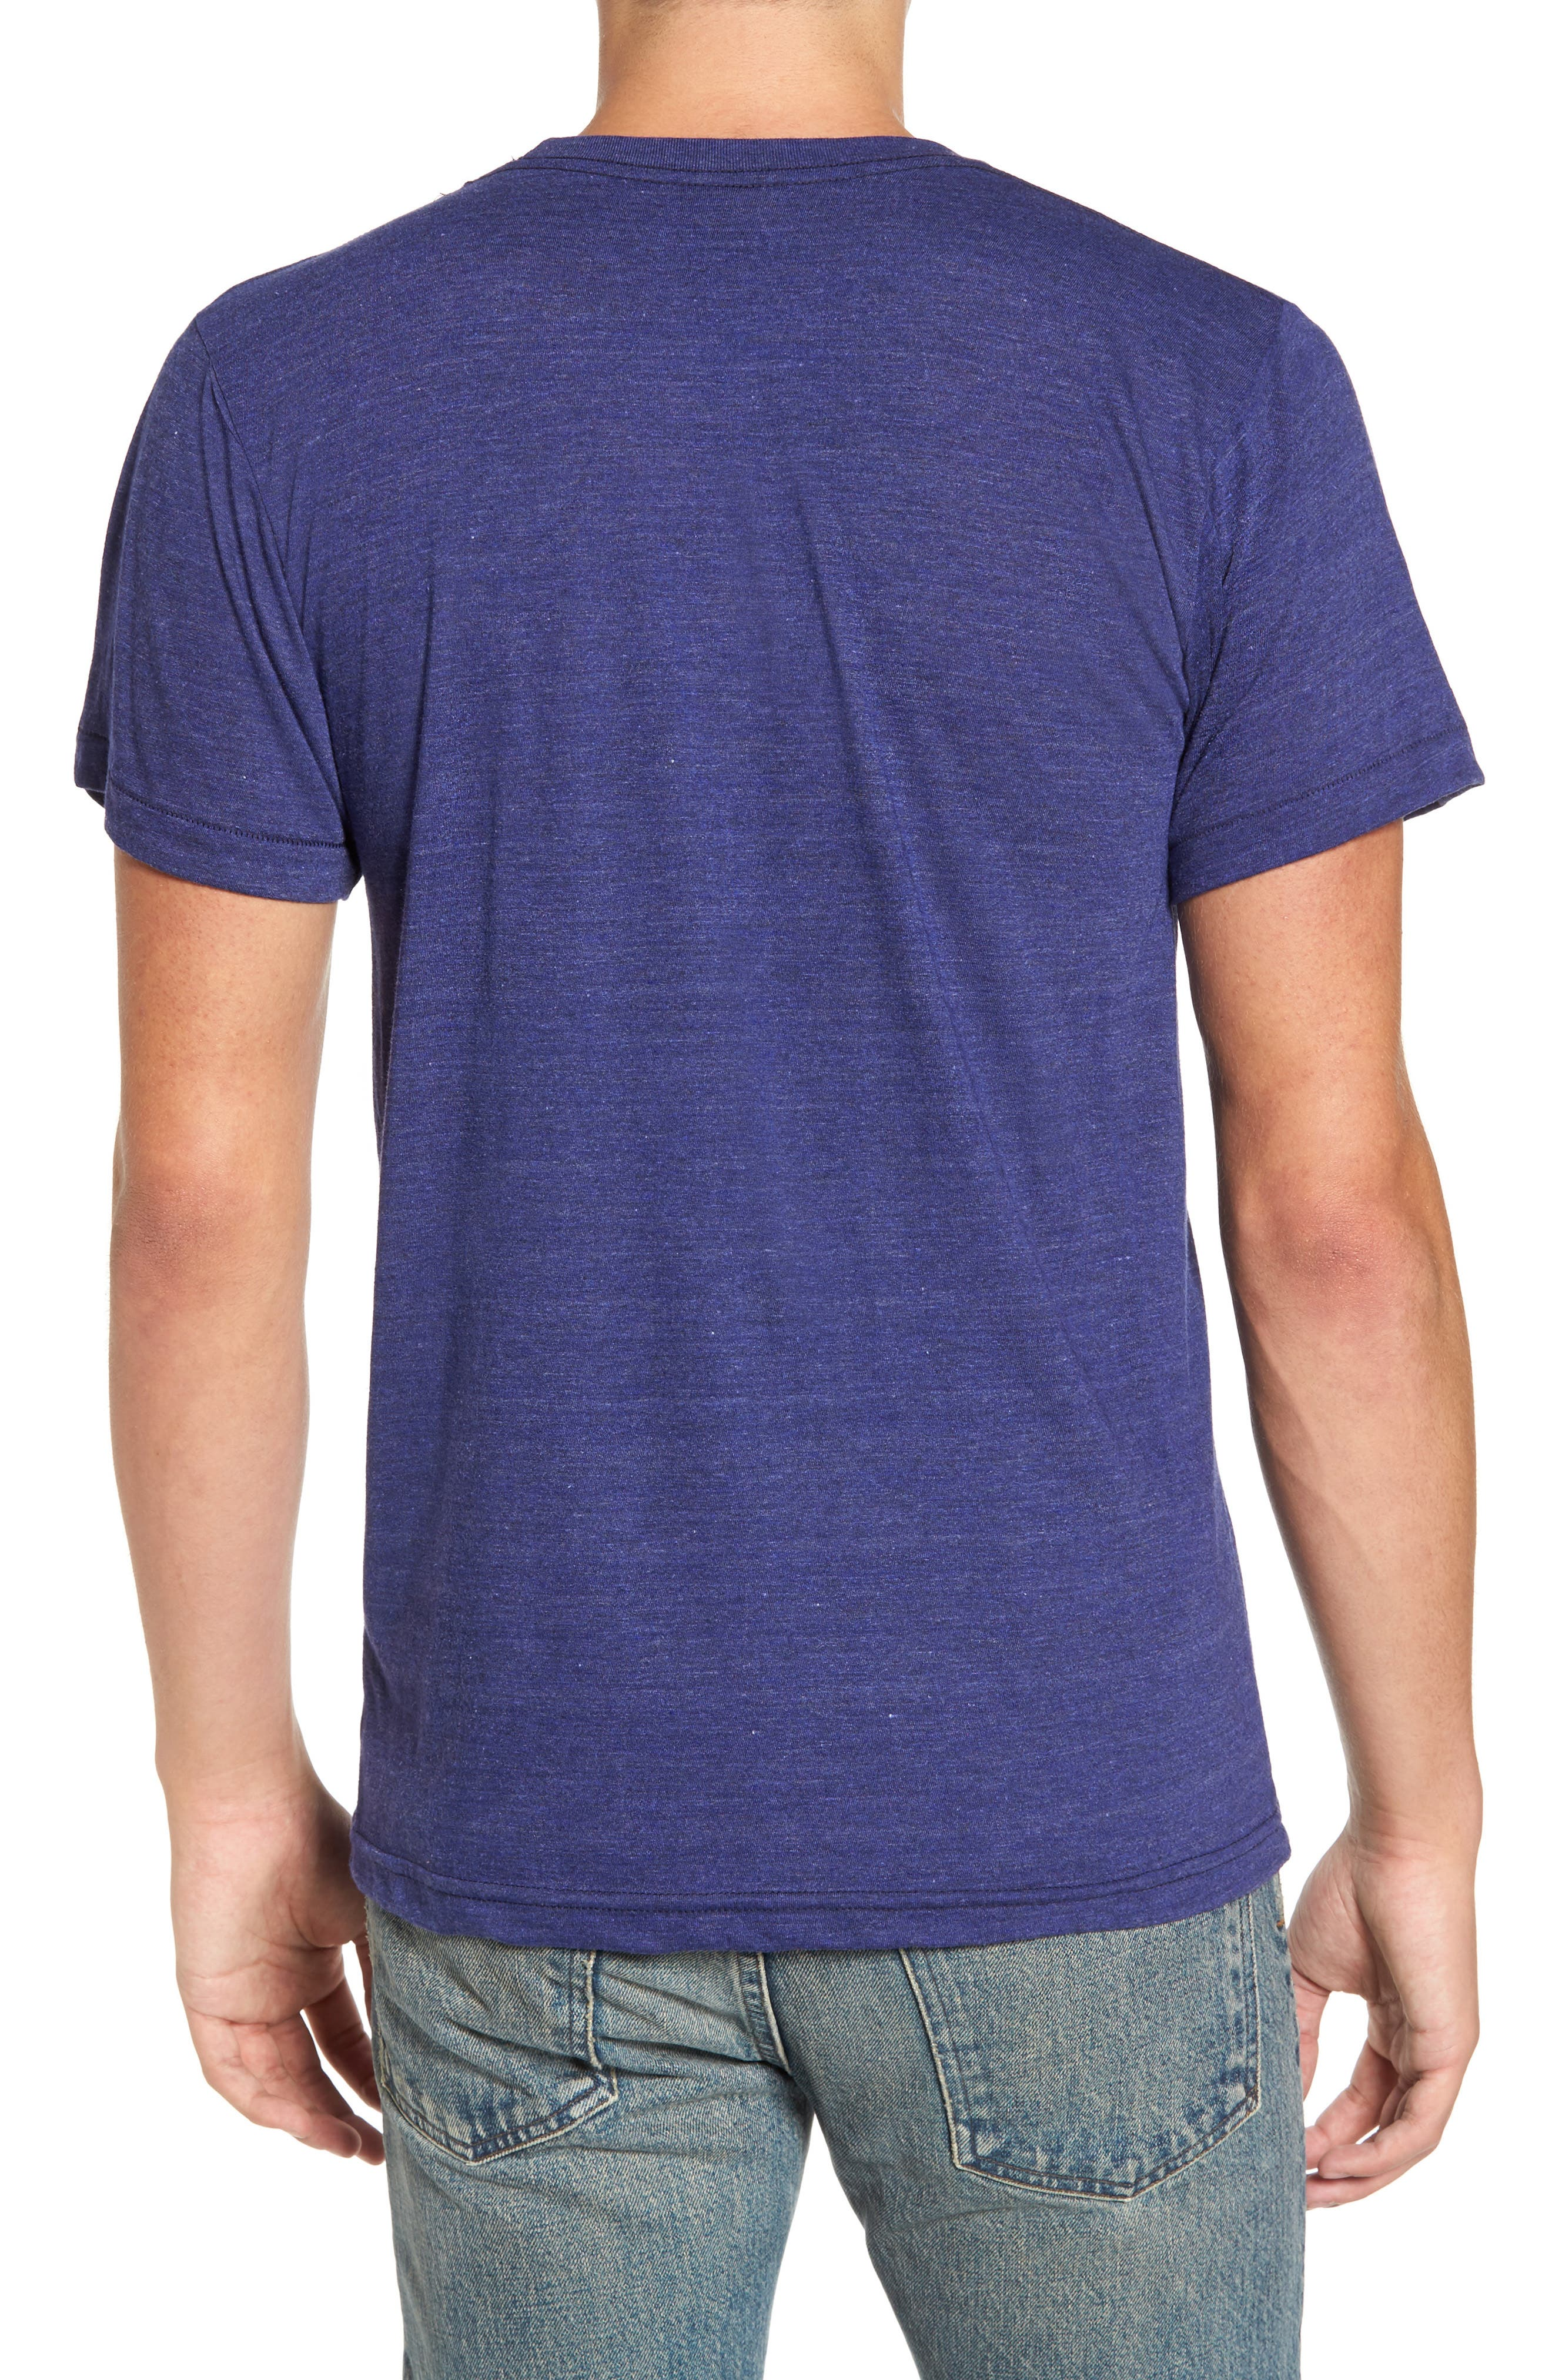 Johnny Tree Embroidered T-Shirt,                             Alternate thumbnail 2, color,                             Blue